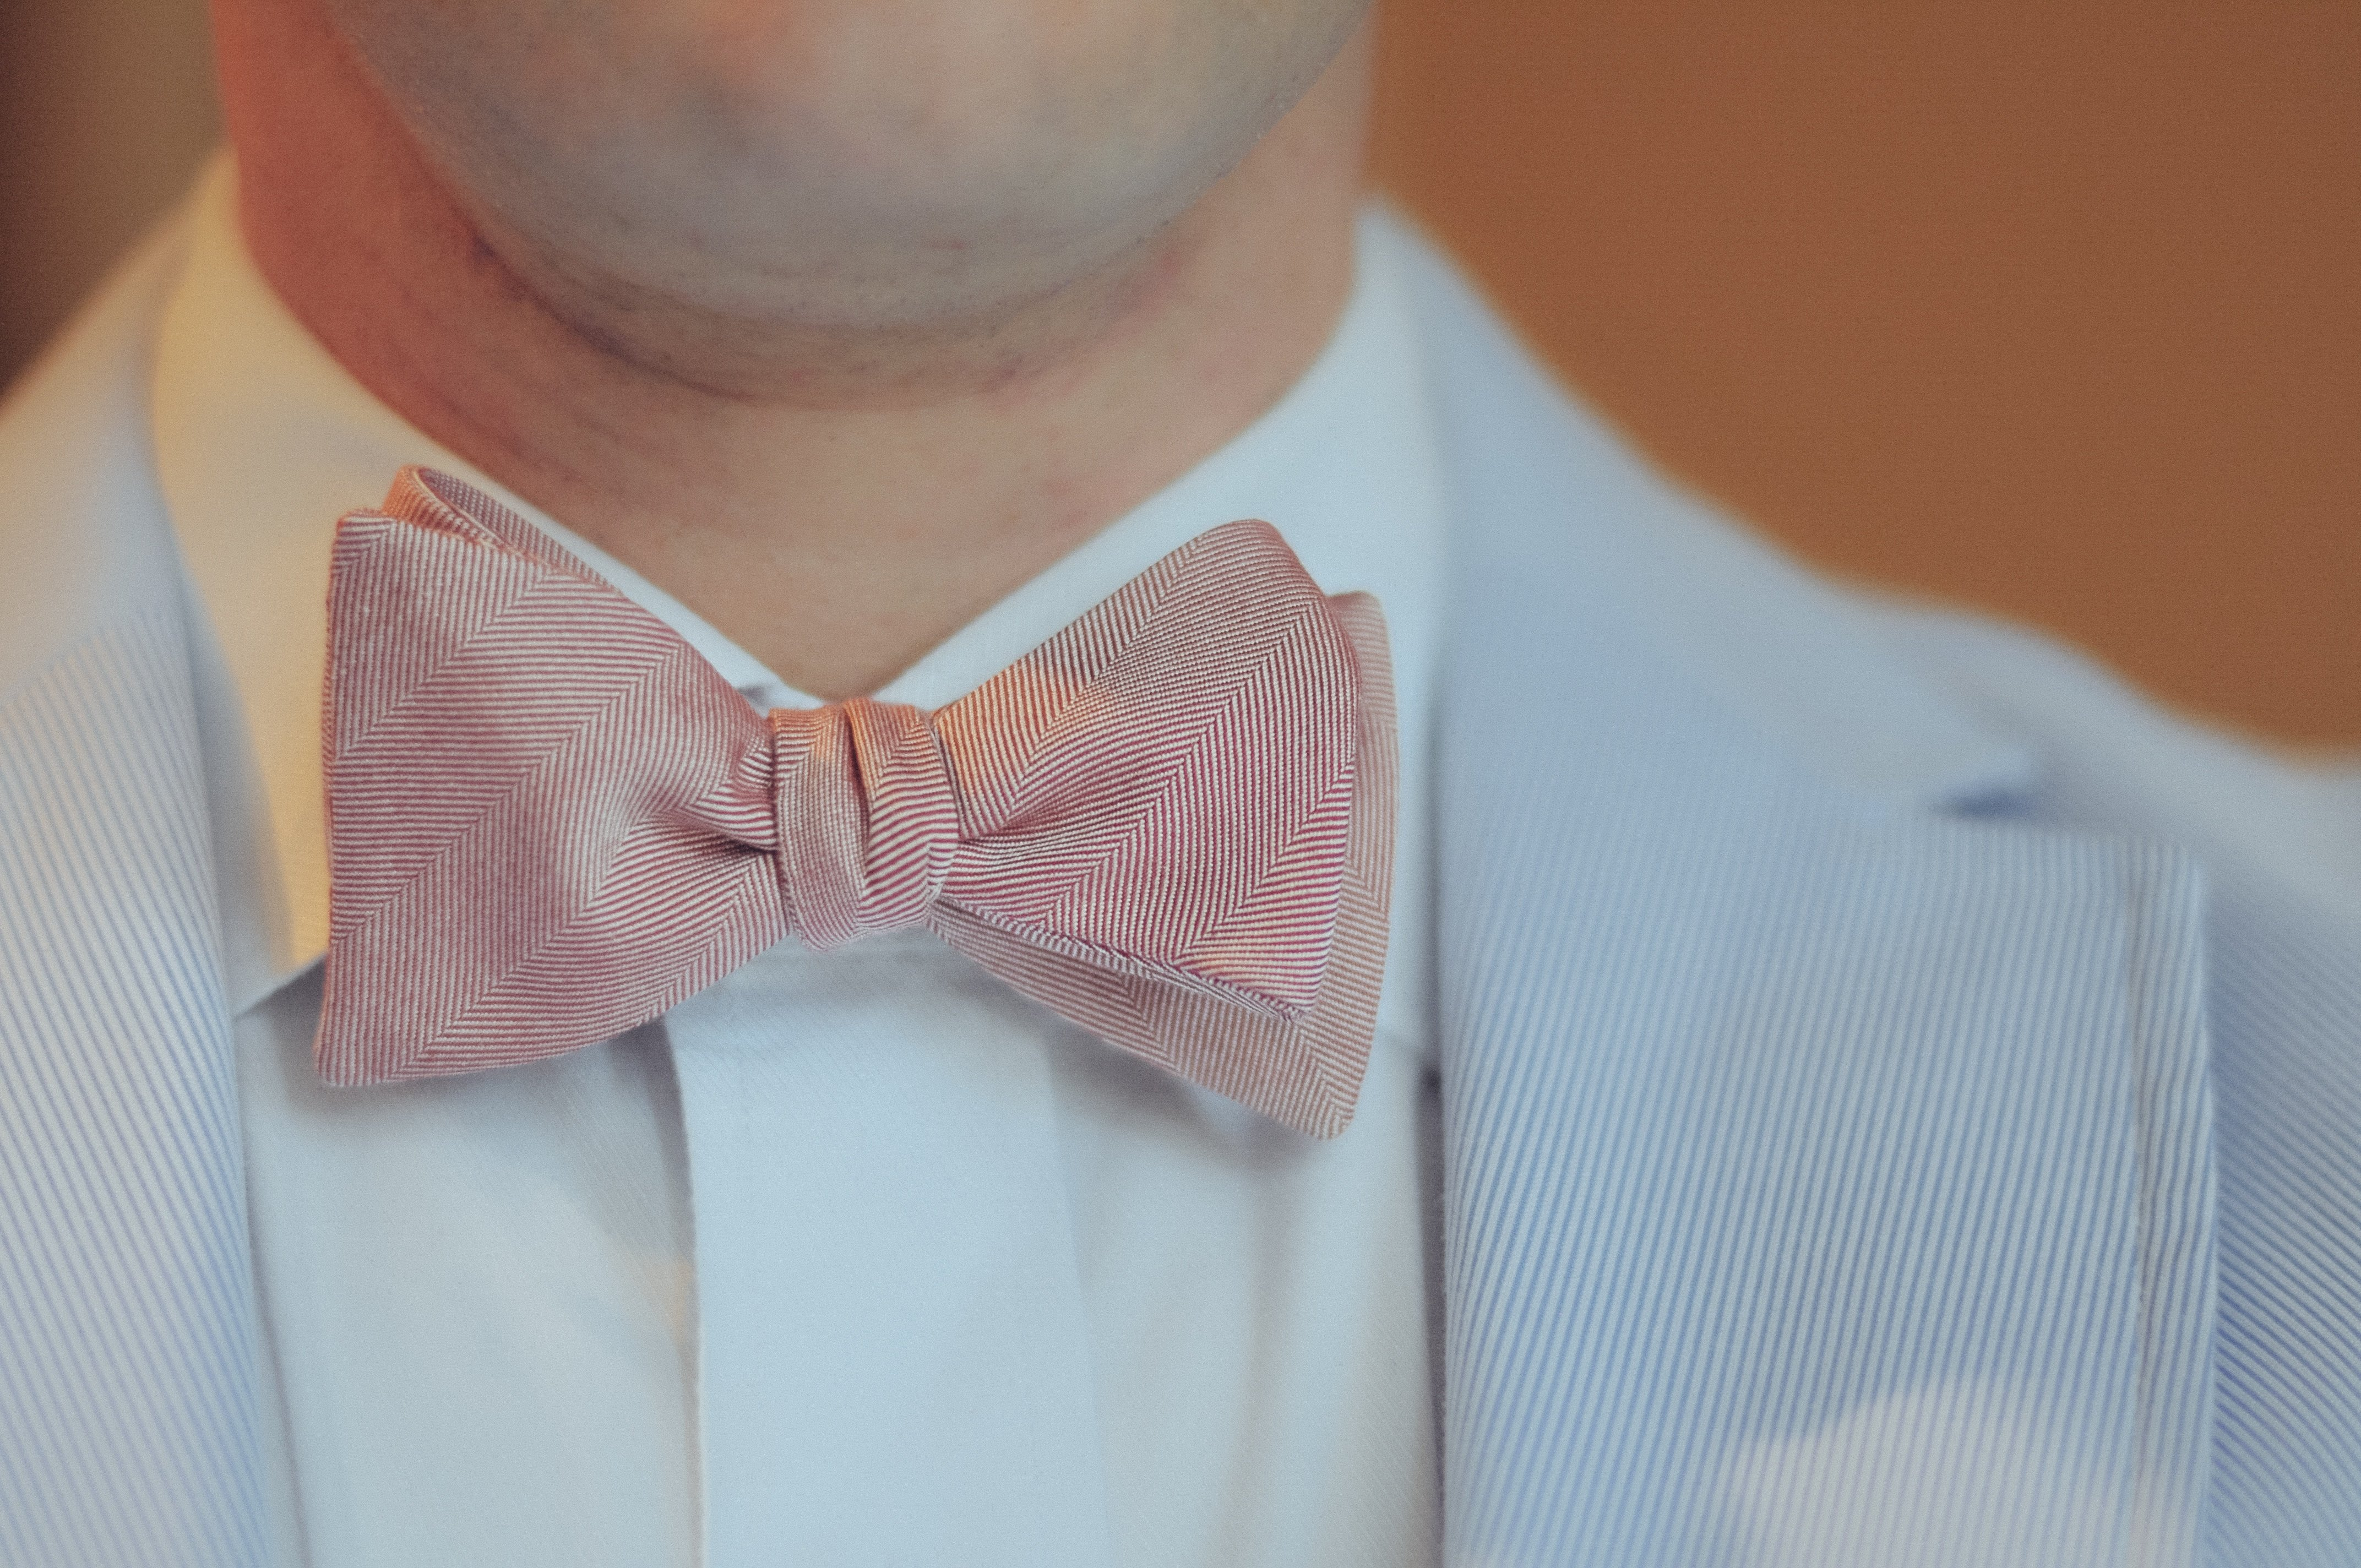 Self Tied Pink Bowtie On Man With Blue Jacket